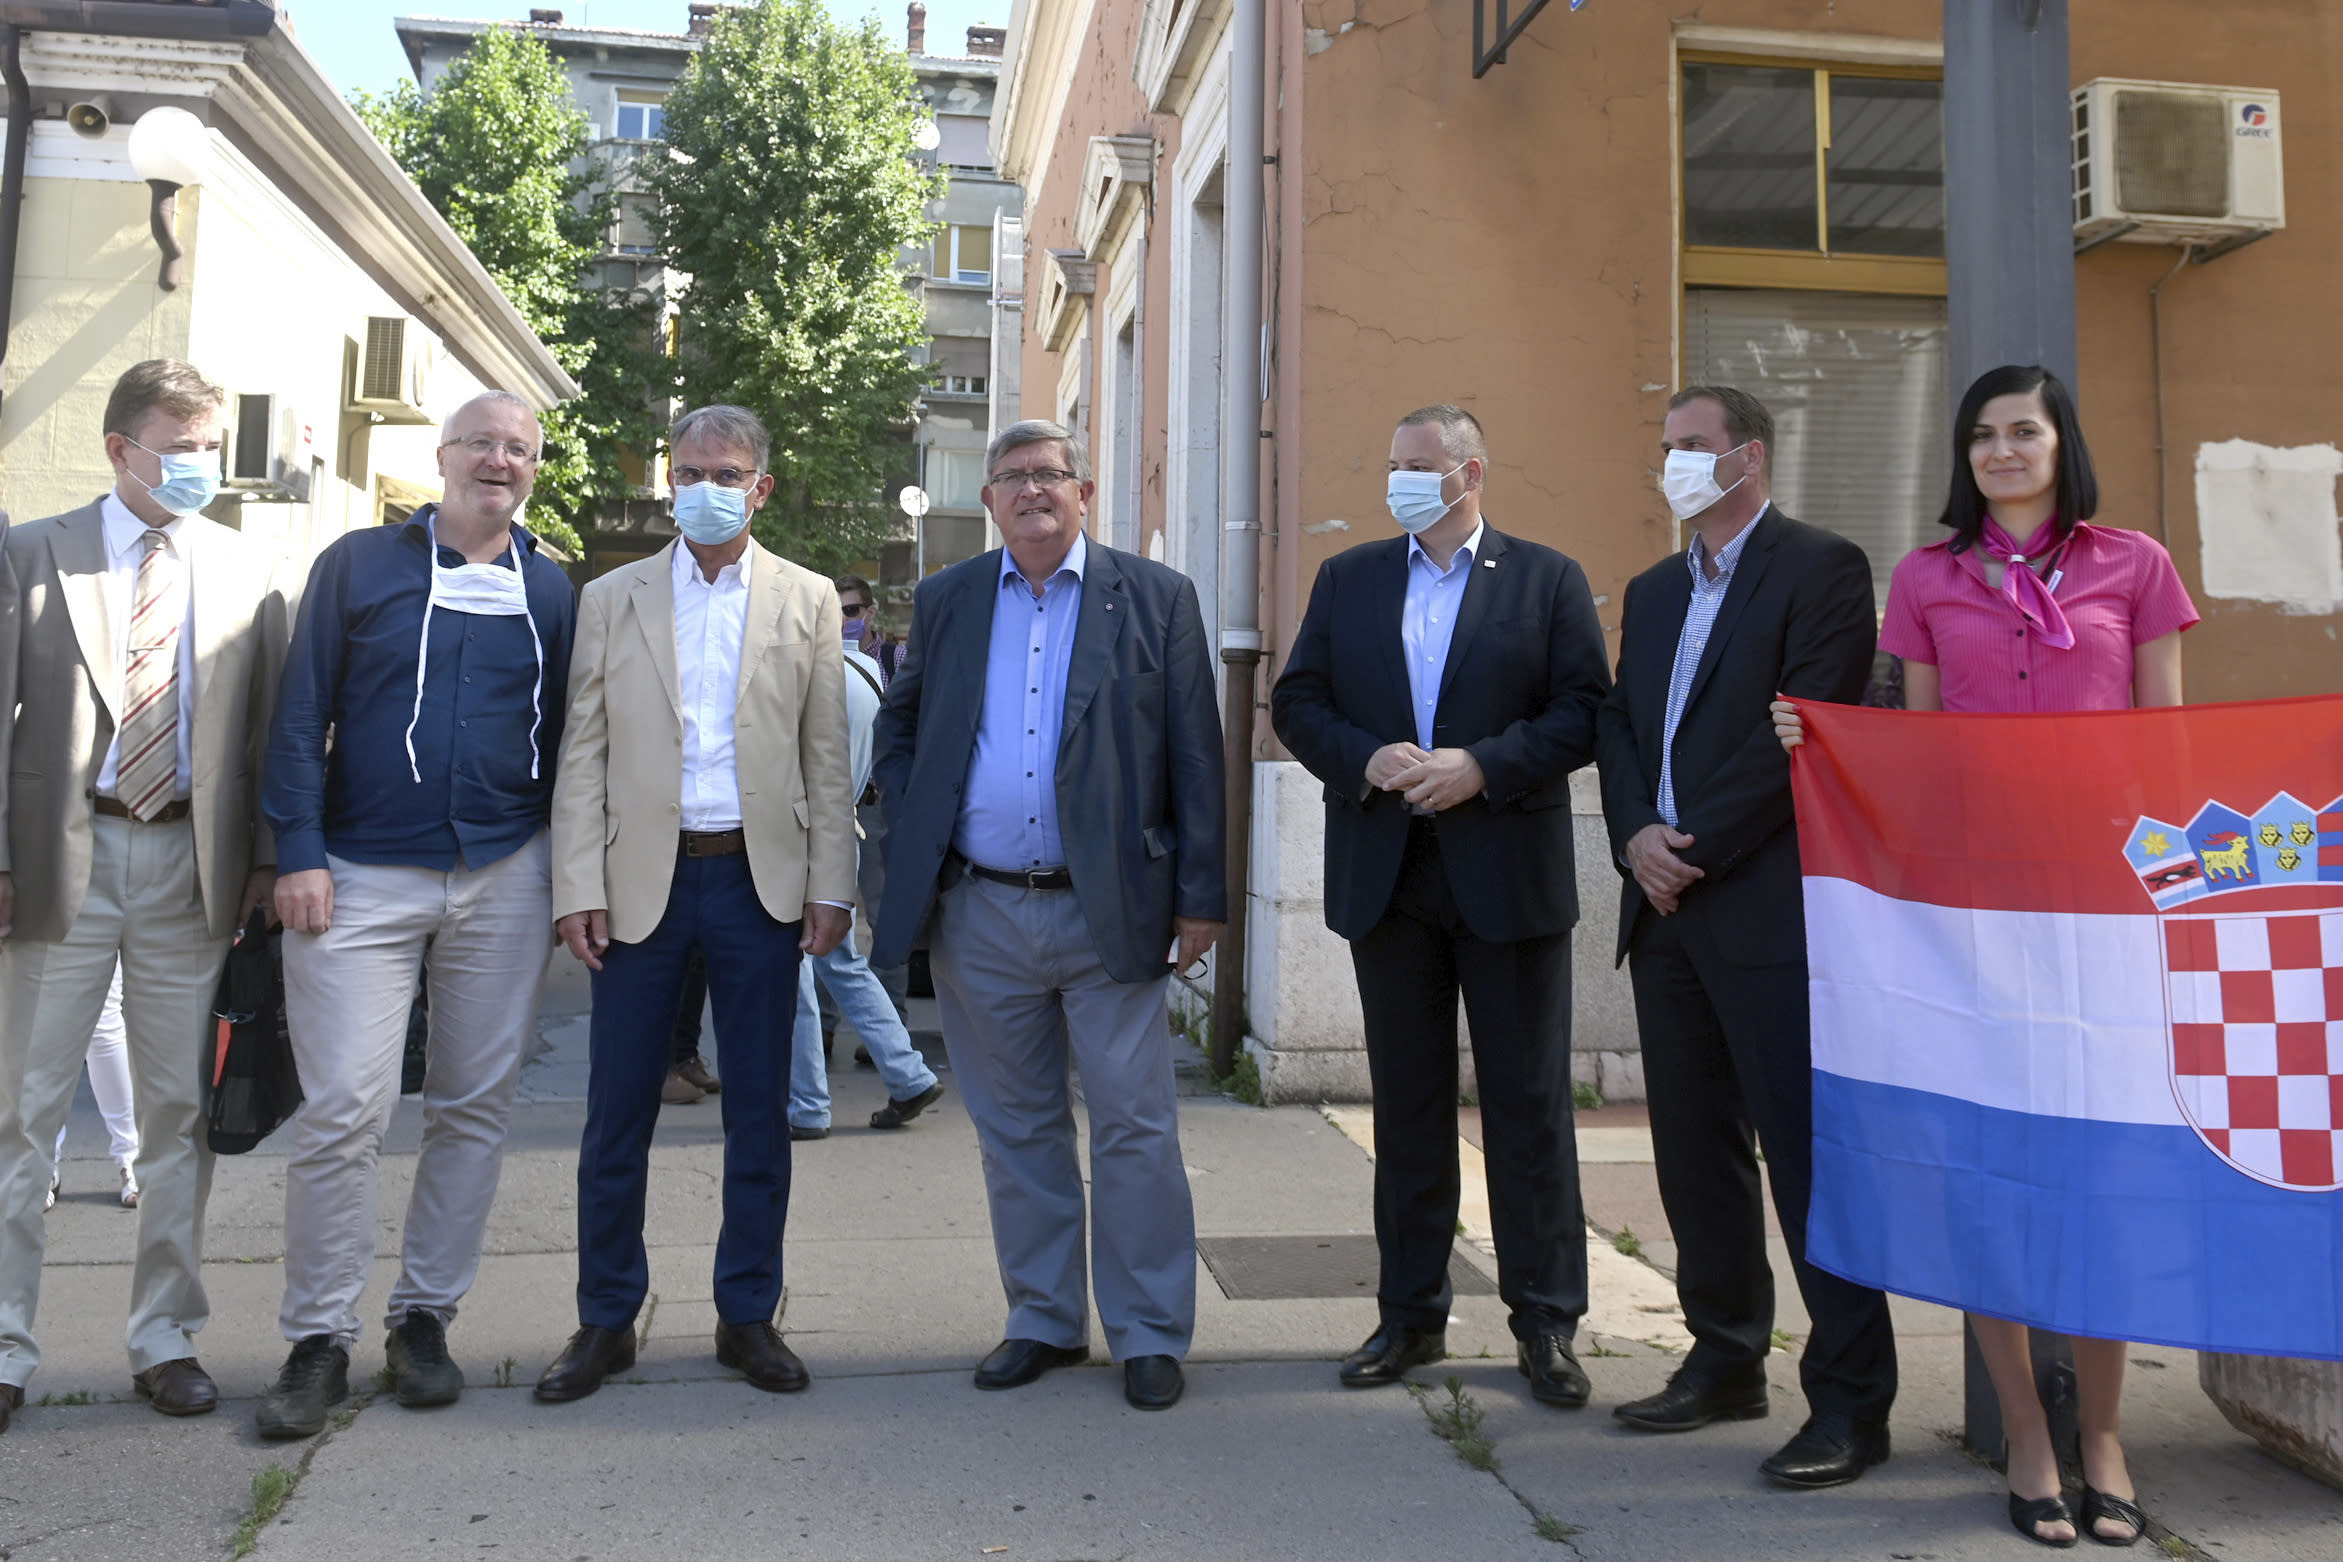 Officials including Rijeka Mayor Vojko Obersnela and Croatia's Minister of tourism Gari Capelli wait to welcome a train to arrive from the Czech Republic in Rijeka, Croatia, Wednesday, July 1, 2020. A train carrying some 500 tourists from the Czech Republic has arrived to Croatia as the country seeks to attract visitors after easing lockdown measures against the new coronavirus.(AP Photo)